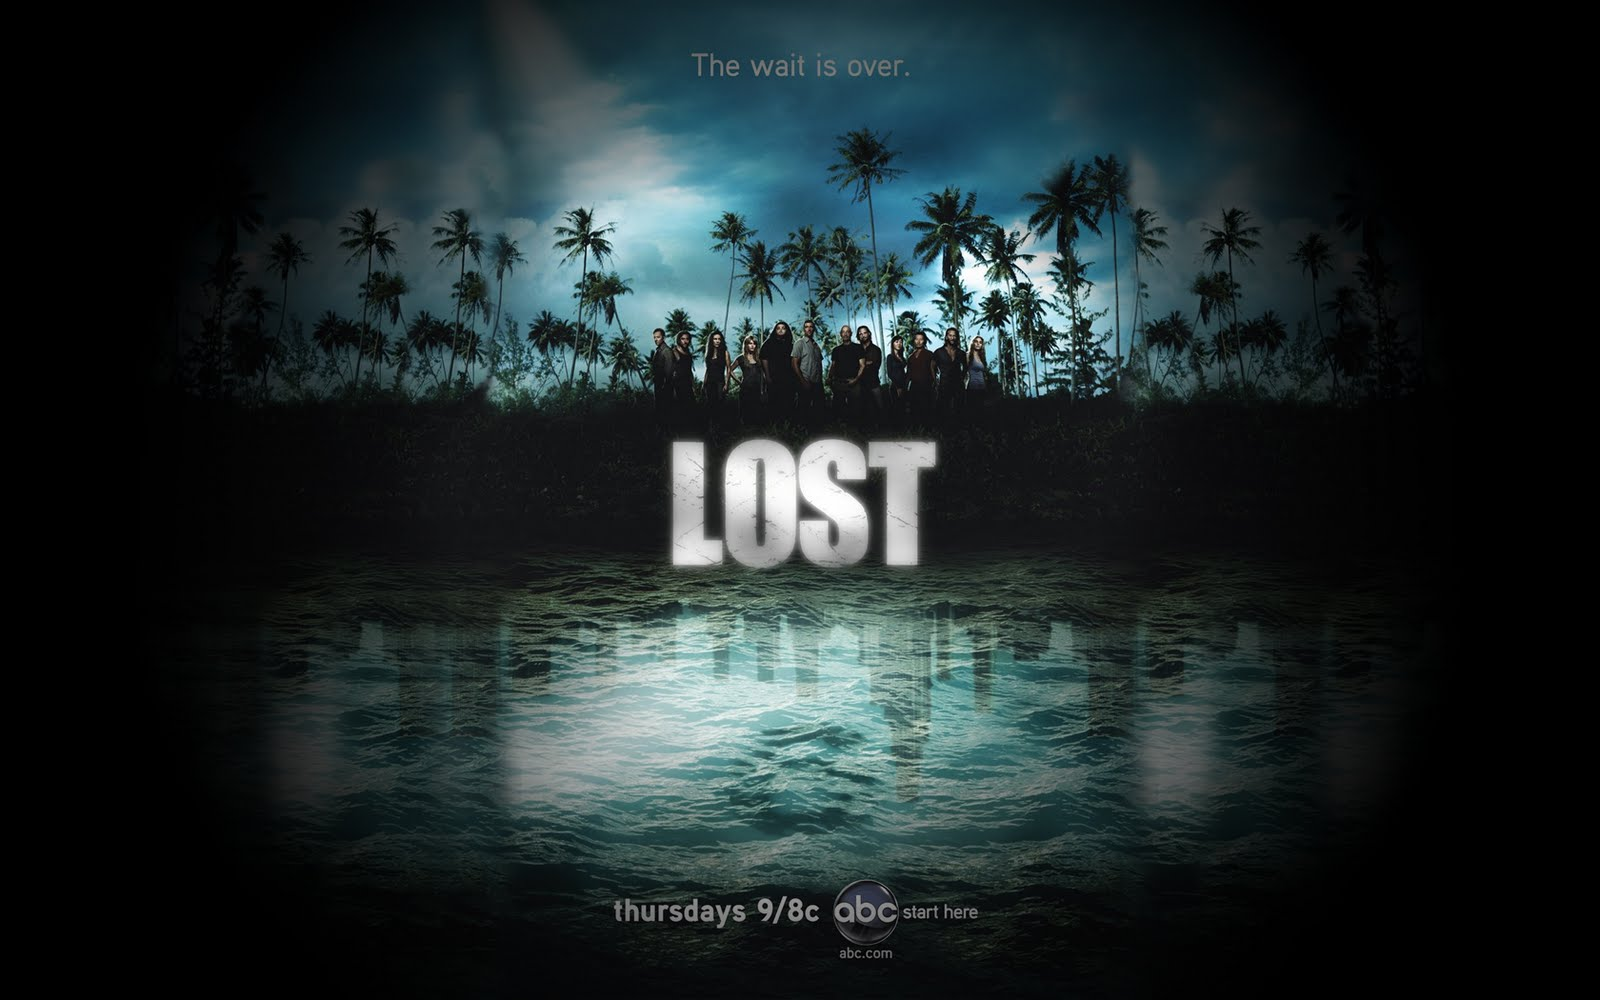 karen bryan: lost wallpaper hd